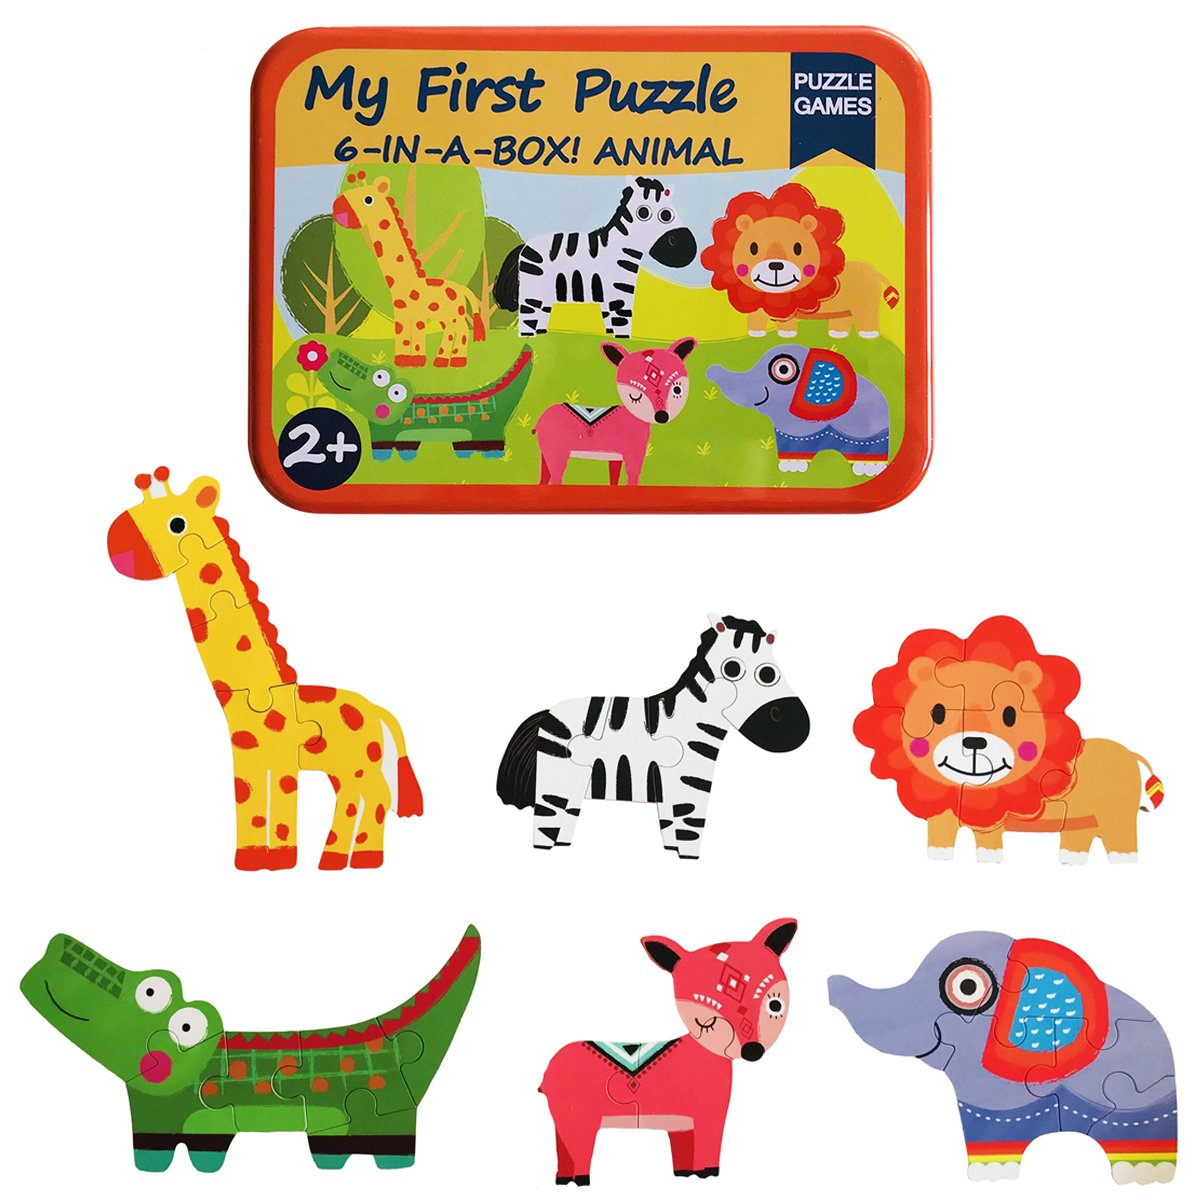 Humars Puzzle Games 6-In-A-Box! My First Animal Puzzle Set Wooden Jigsaw Puzzles For Boy & Girl Toddlers